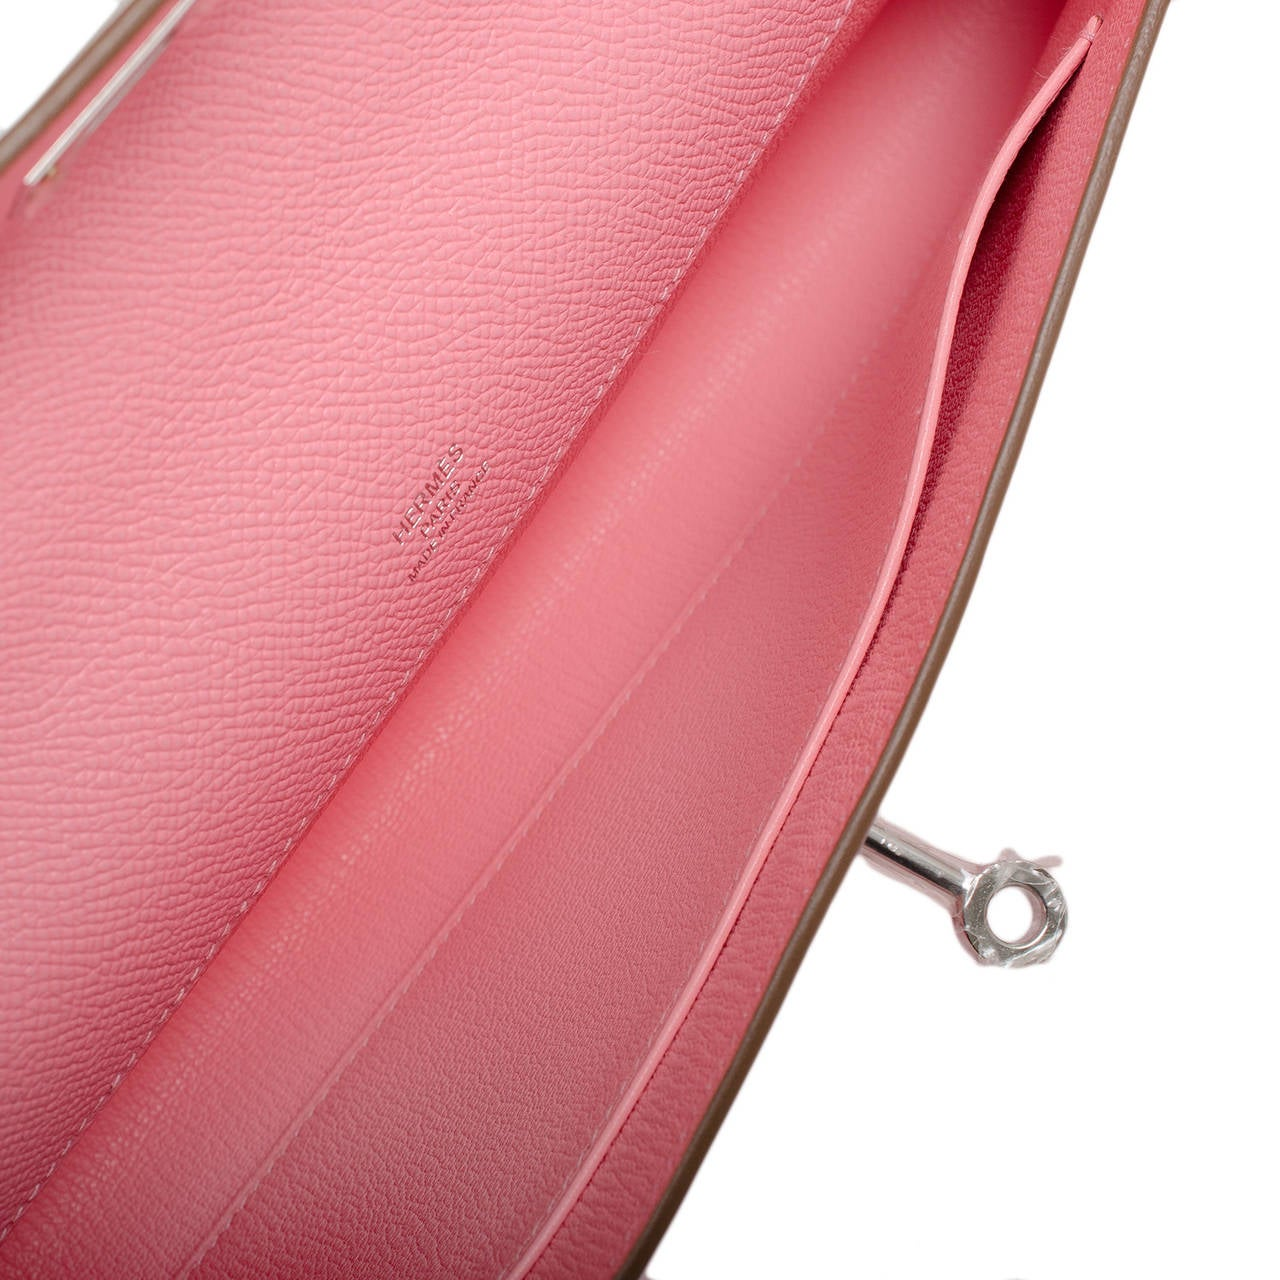 hermes kelly pochette rose confetti clutch bag epsom palladium hardware